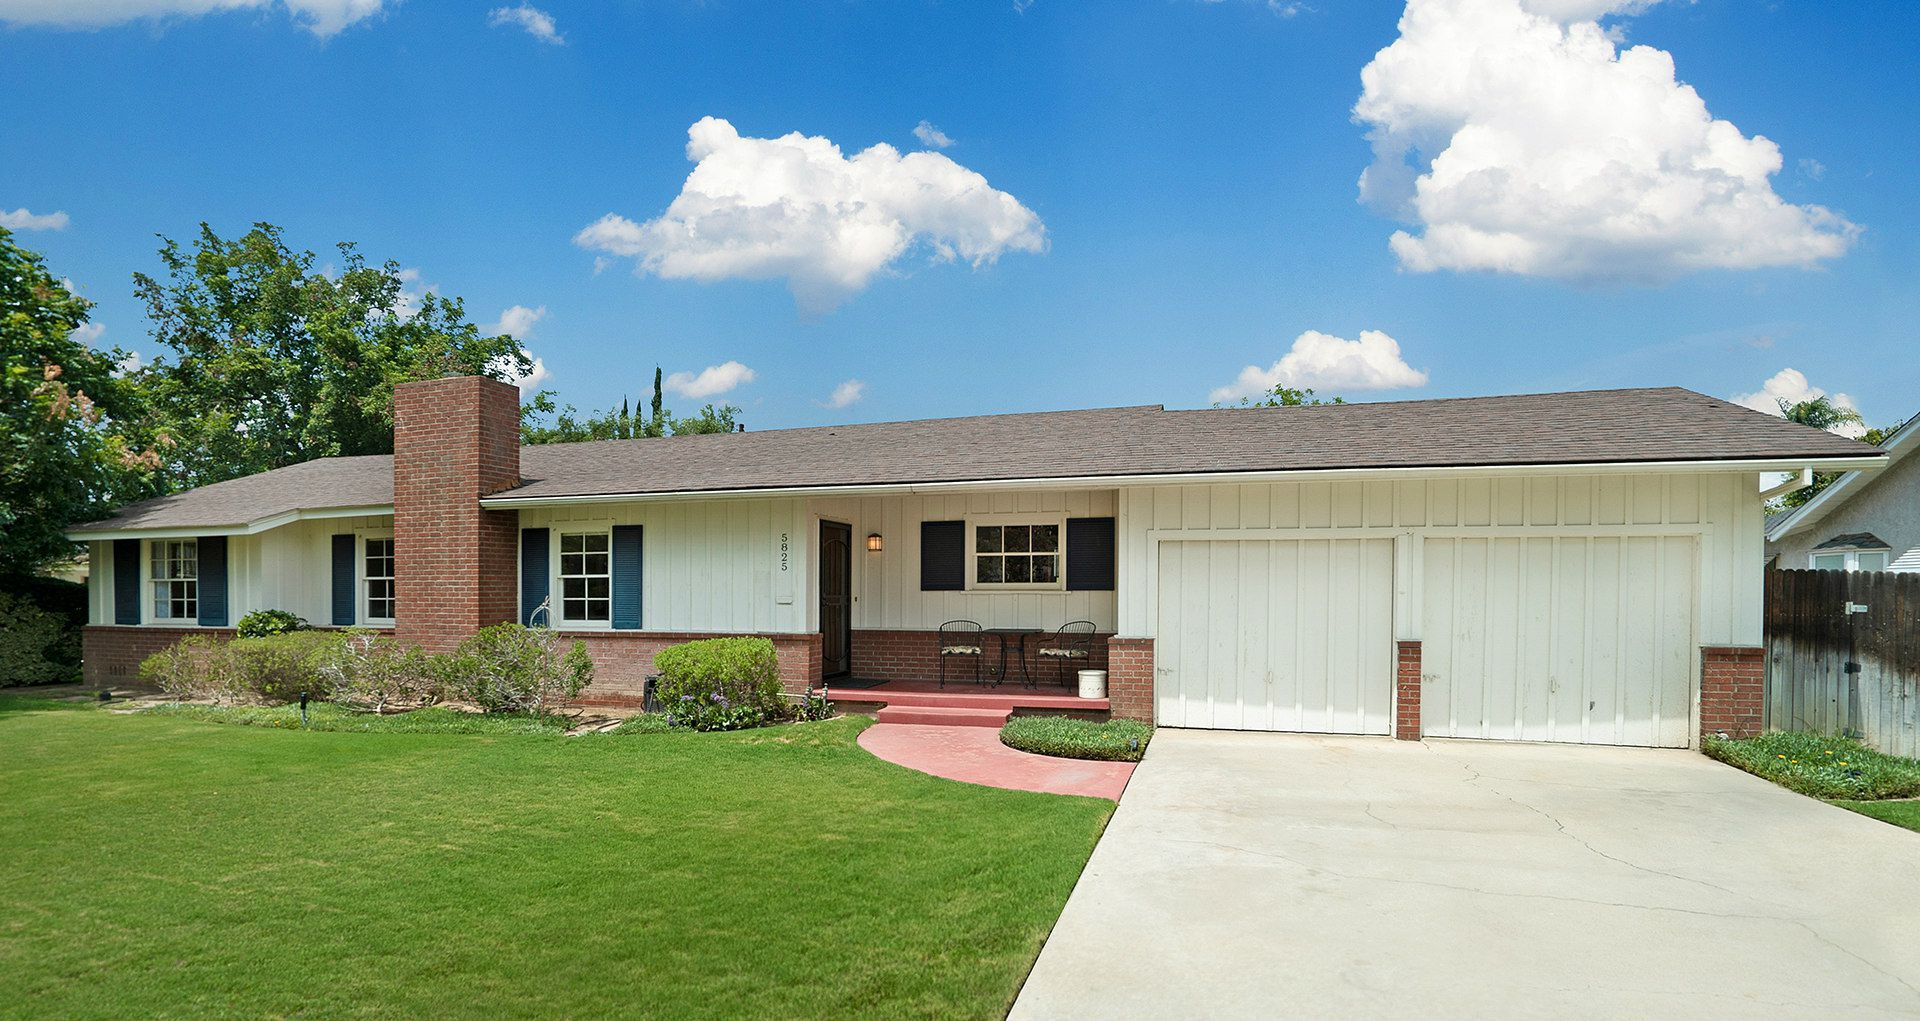 5825 Palm Ave, Riverside CA 92506 listed by THE SISTER TEAM